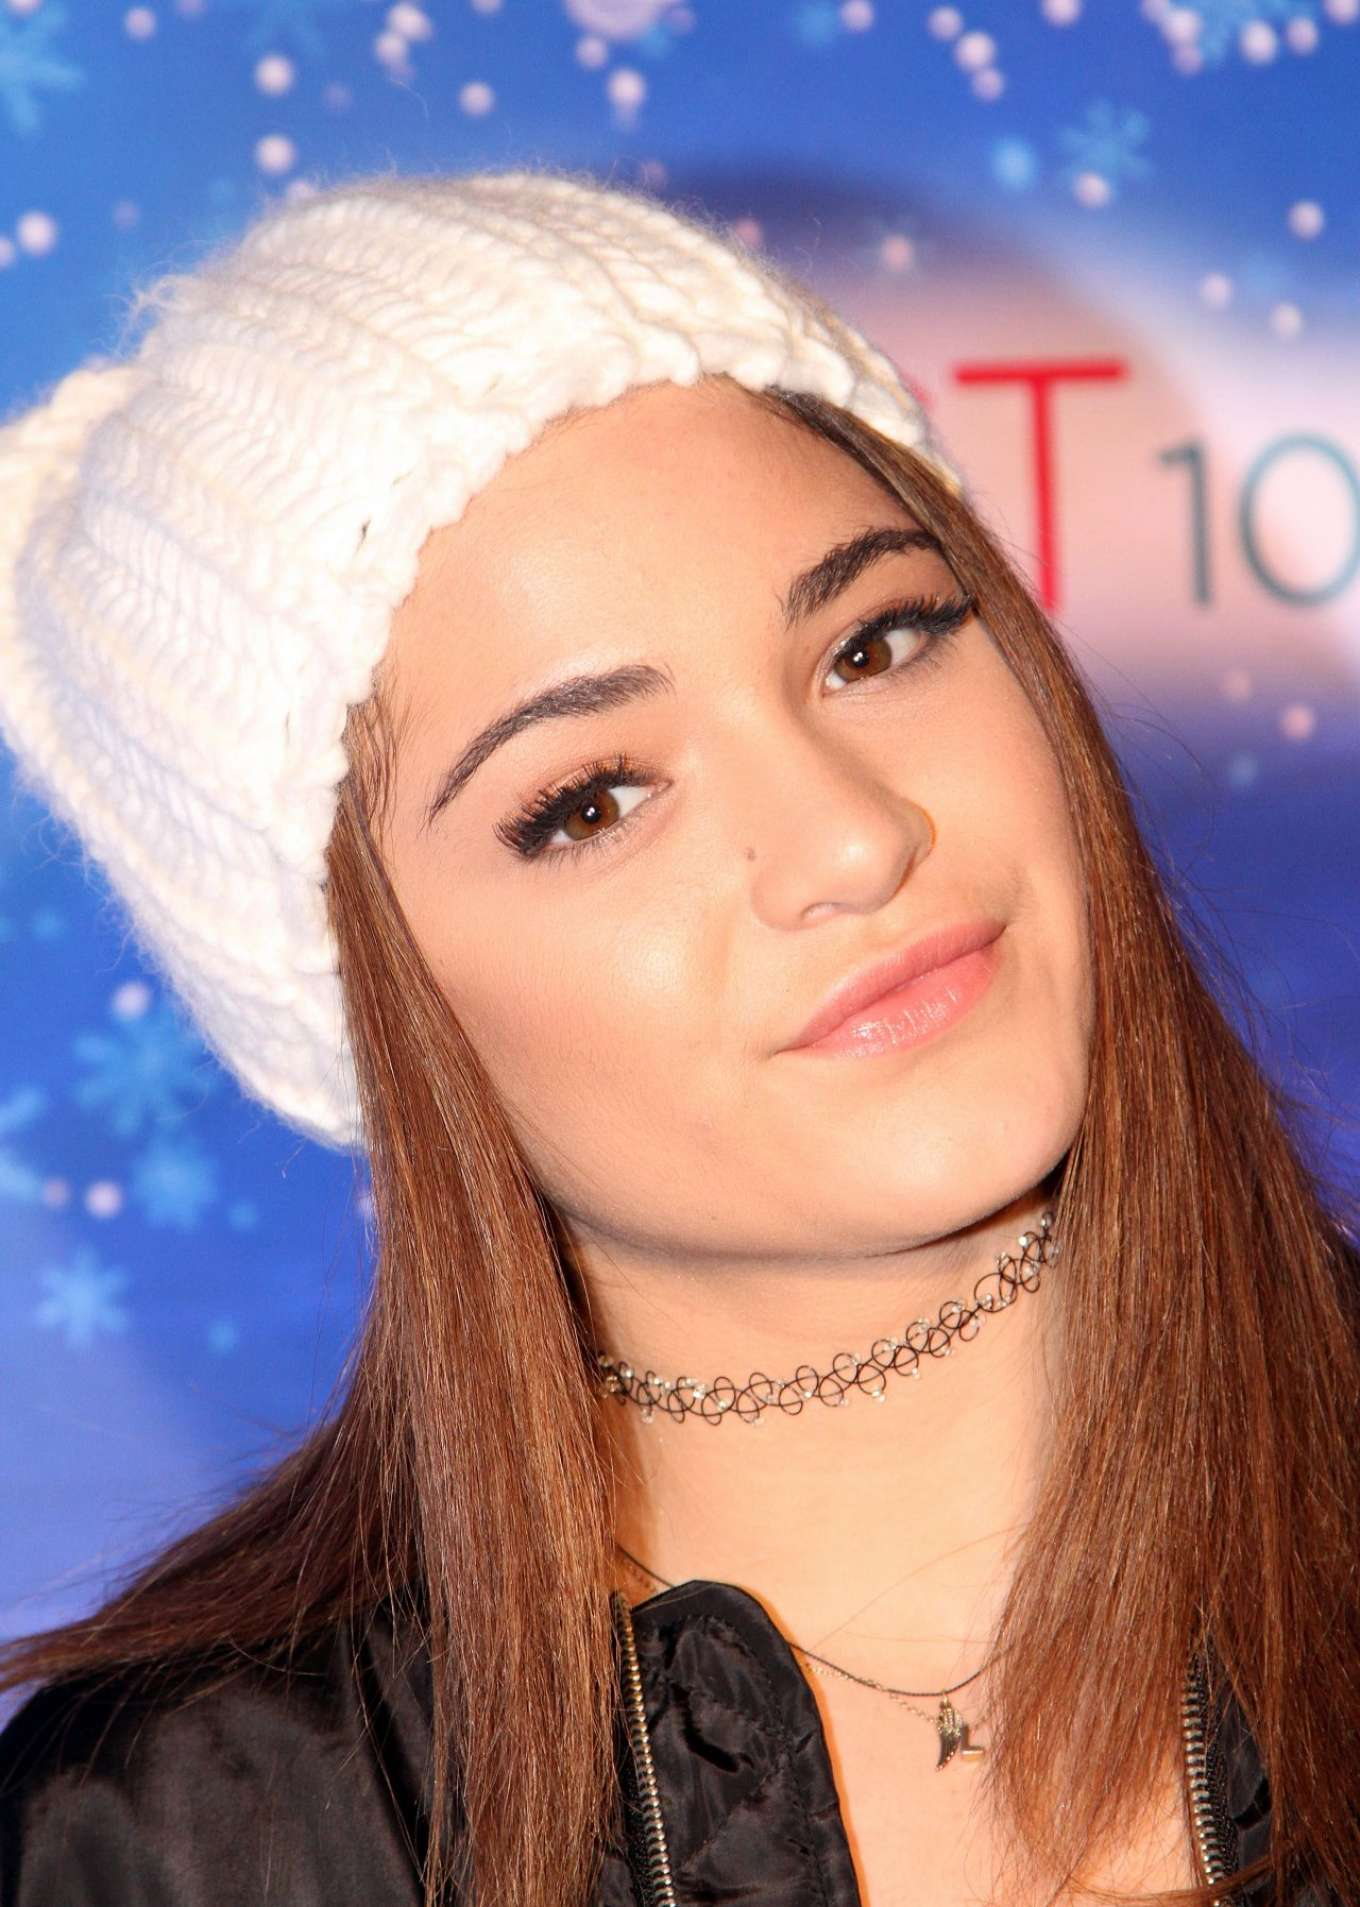 Luna blaise – the queen mary's chill tree lighting ceremony in ...